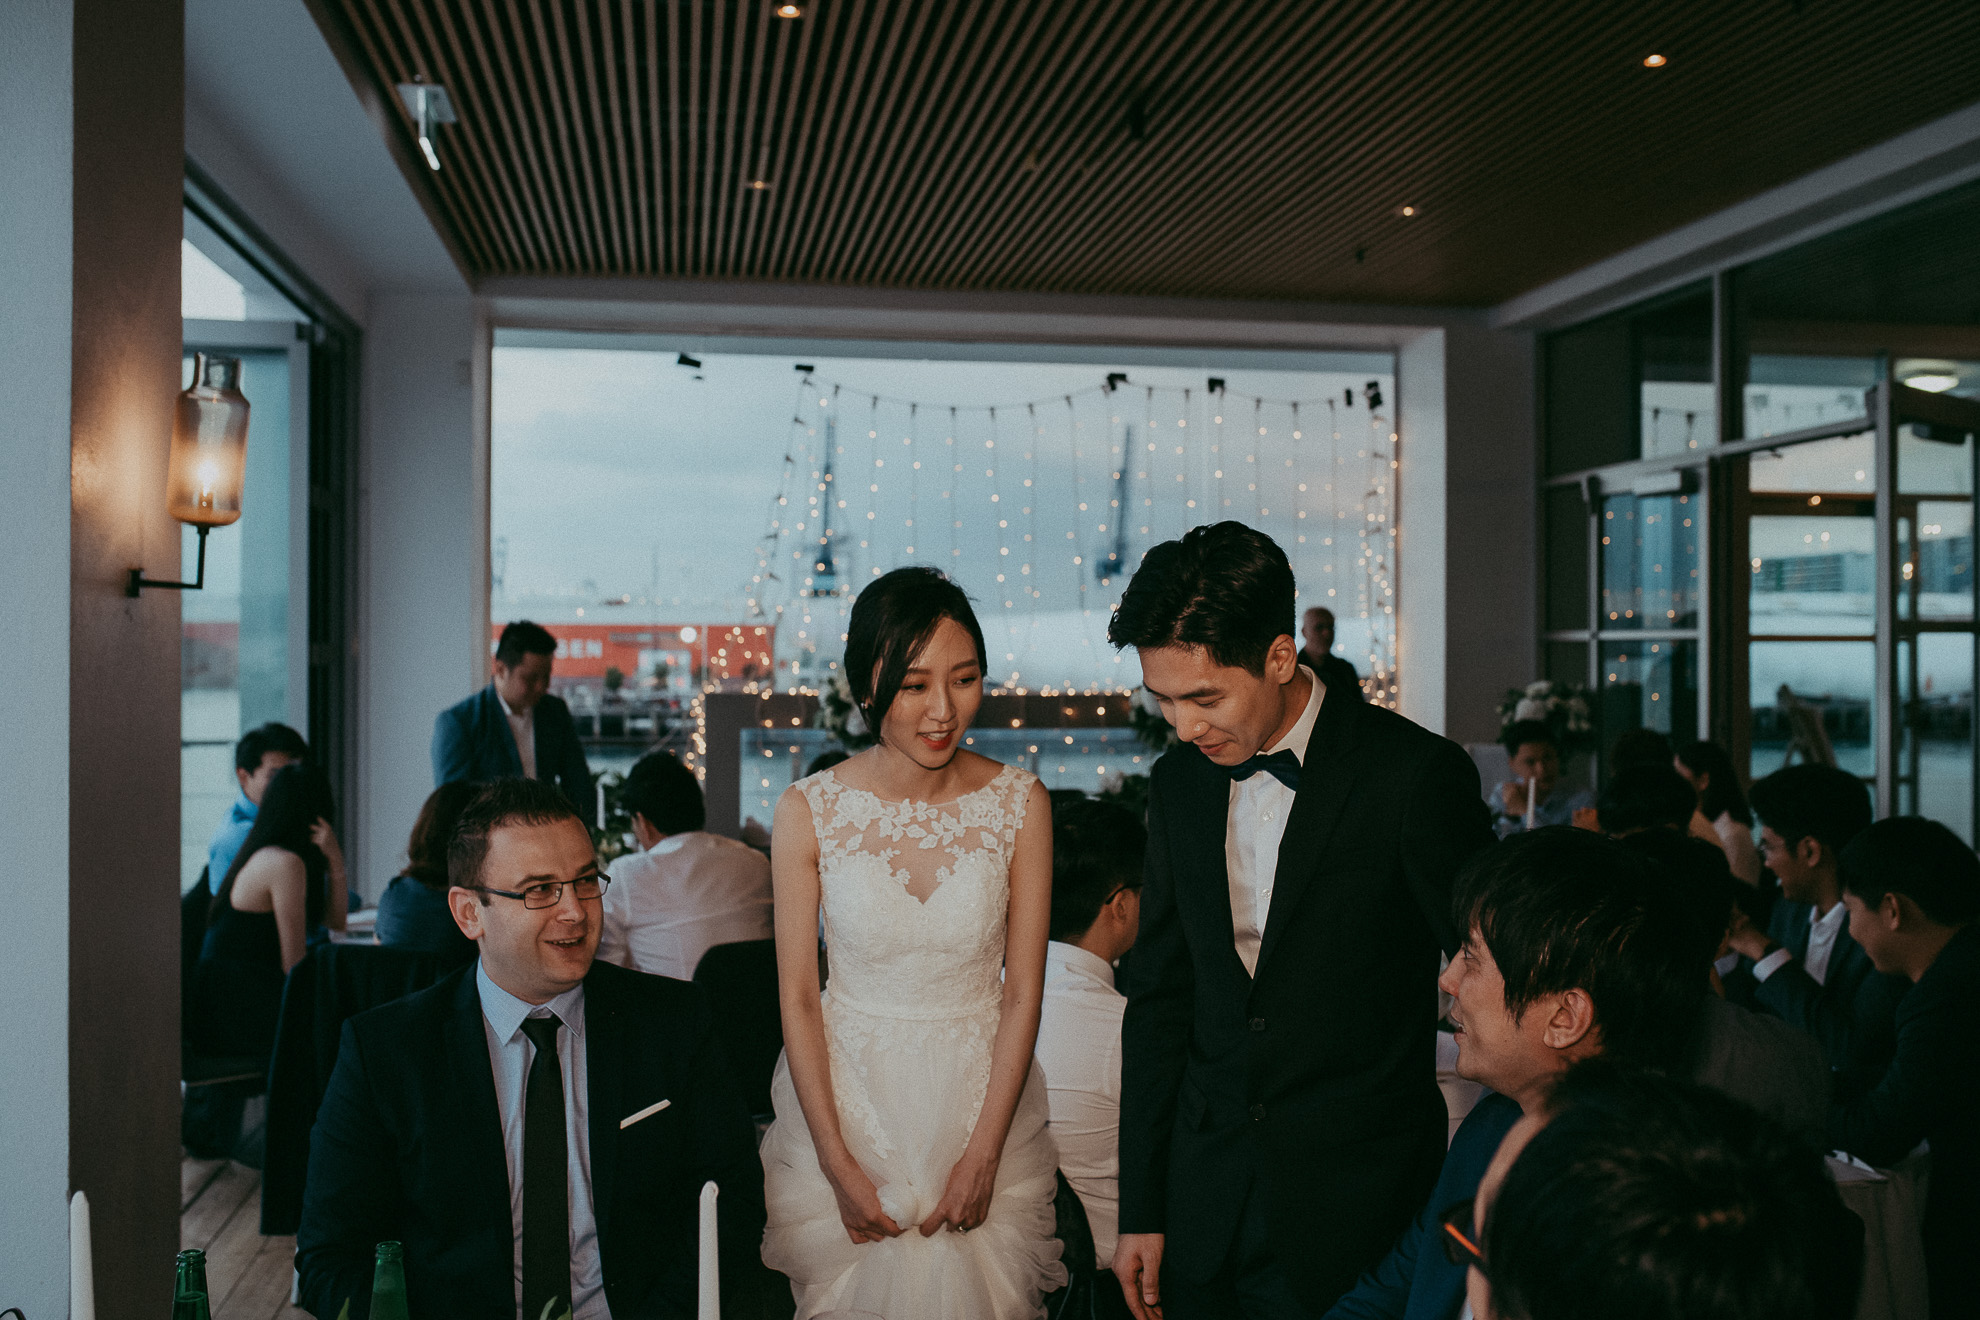 bride and groom at reception with guests